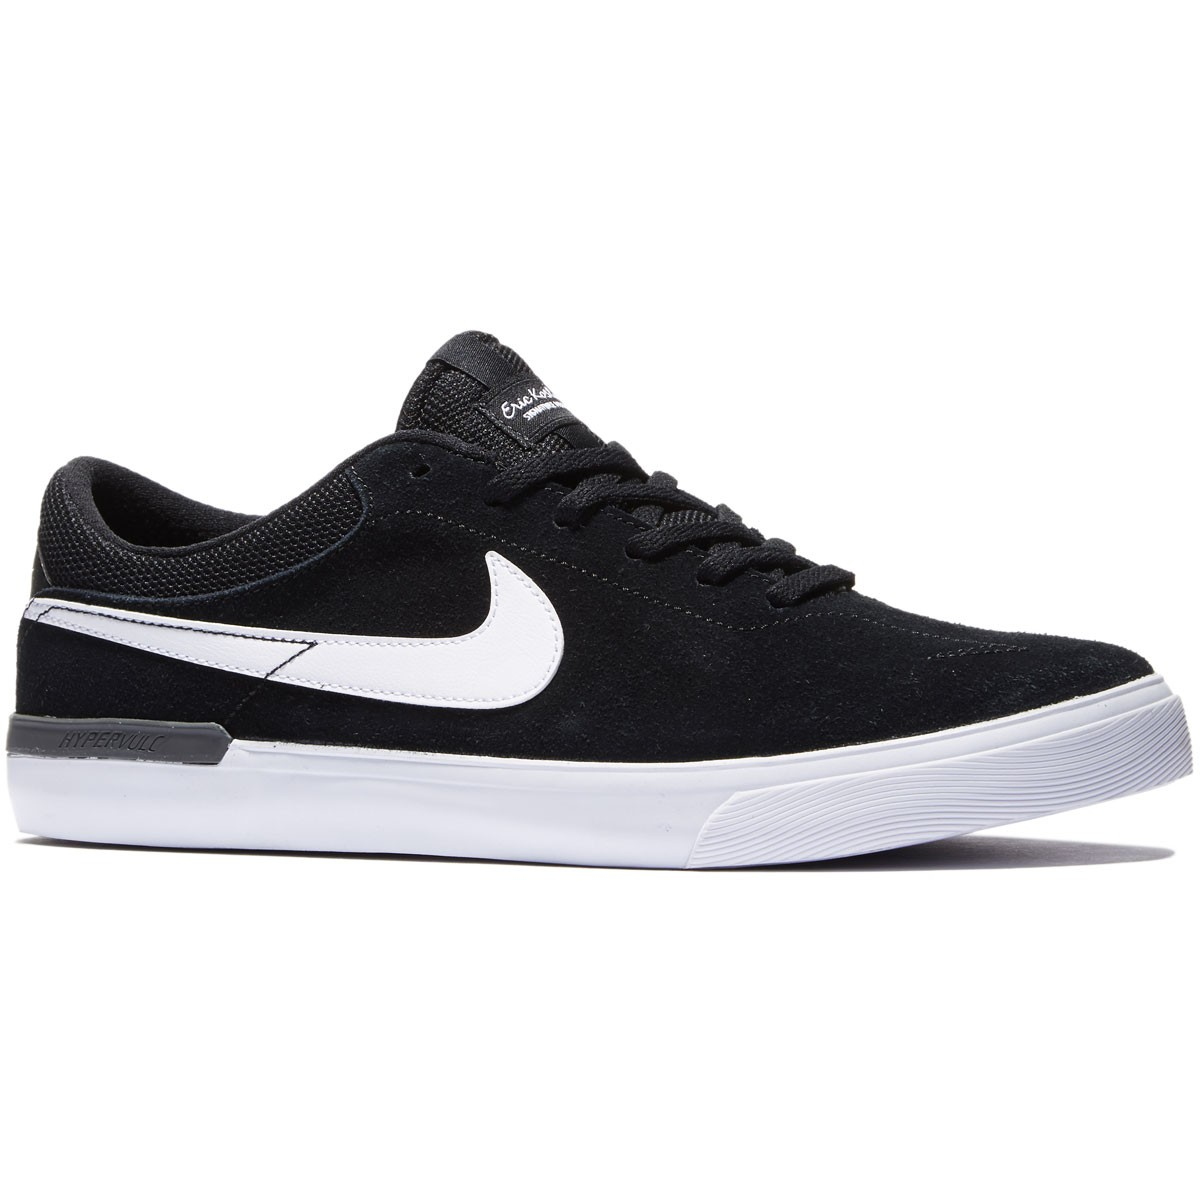 info for 18ed5 18abc Nike SB Koston Hypervulc Shoes - Black Dark Grey White - 8.0